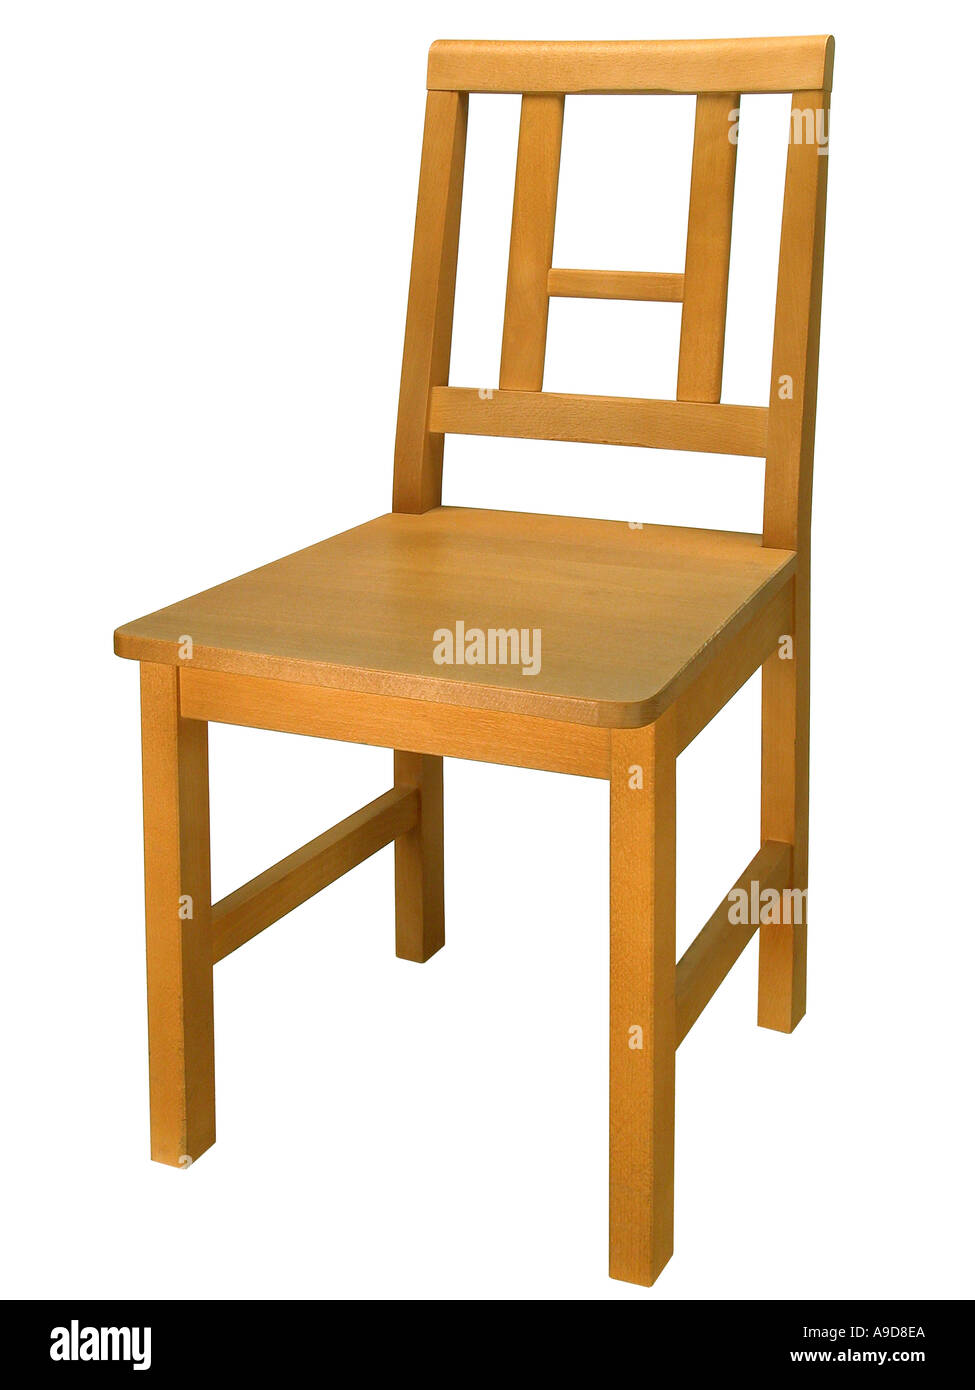 simple wooden chair. Wooden Chair Wood Furniture Sit Seat Simple Plain L